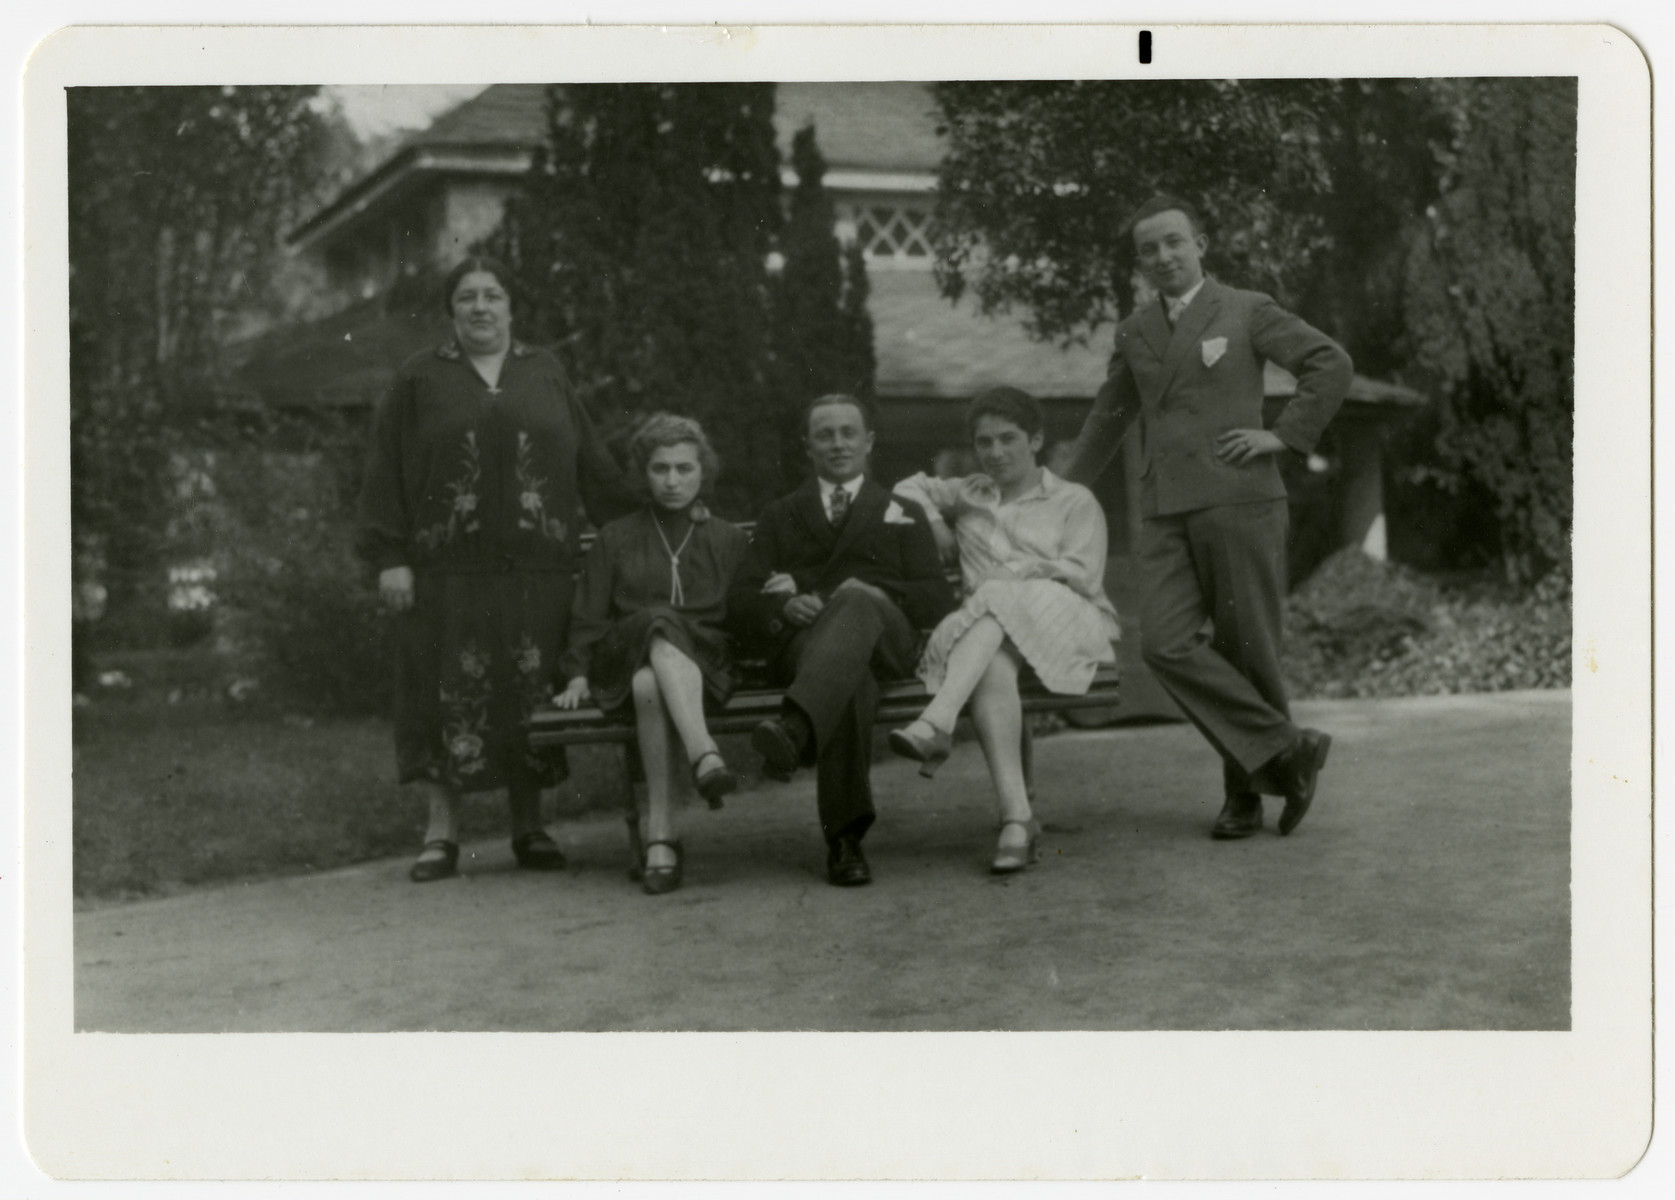 Members of  the Hilsenrath family pose on a park bench in Bad Kreuznach.  The woman standing is Anni's aunt Anna Knoll, who took care of her since she was young.  She perished in Riga.  The couple sitting next to her are Anni and Israel Hilsenrath,  The other couple is Felix Knoll ( Anna's son) and his wife